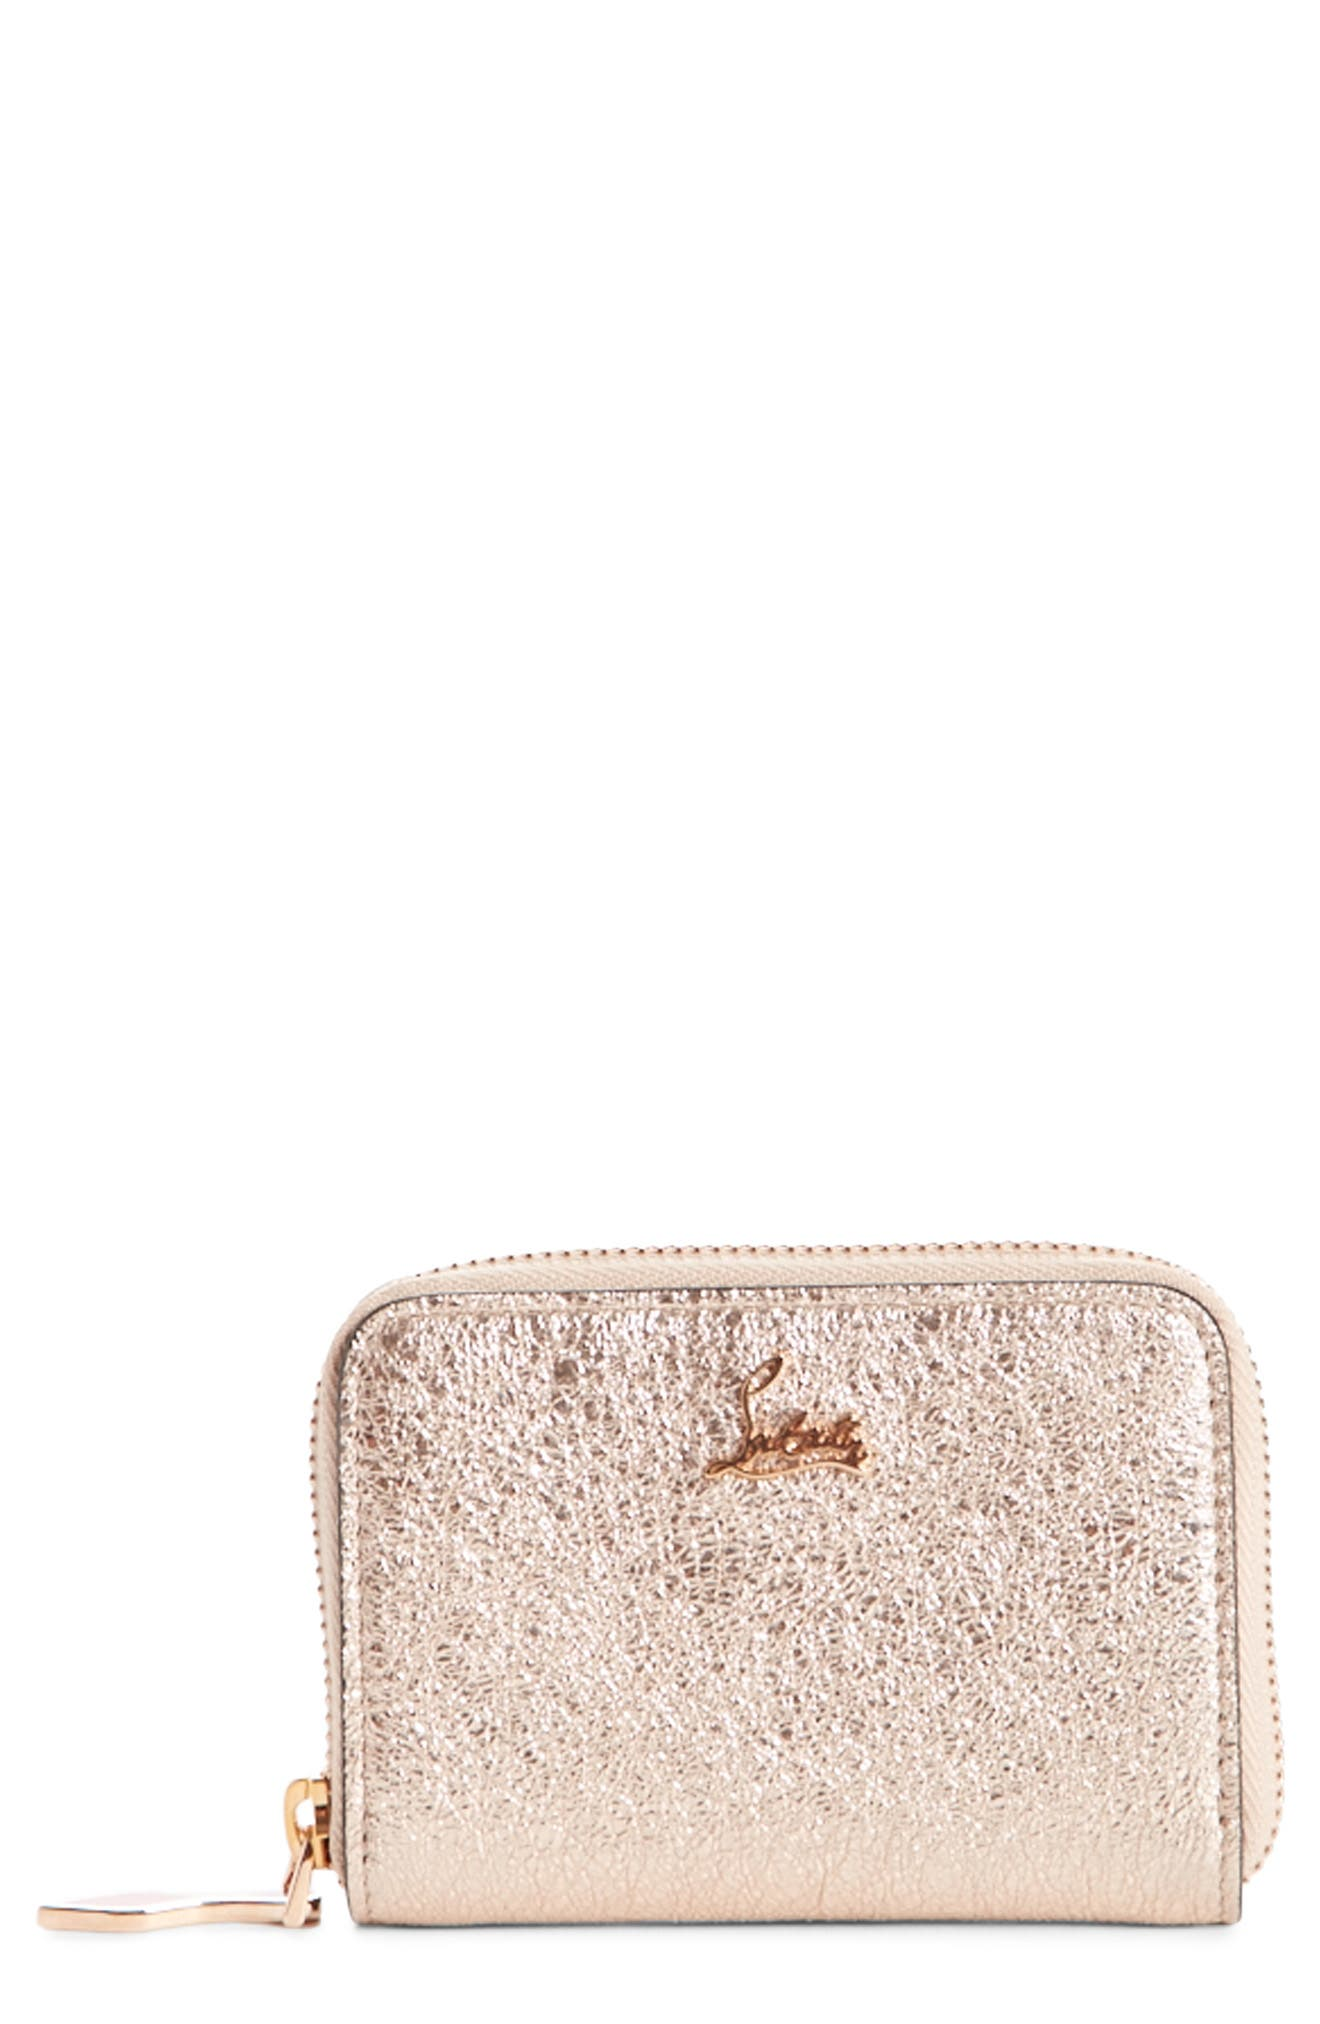 Panettone Leather Coin Purse,                             Main thumbnail 1, color,                             Rose Gold/ Rose Gold